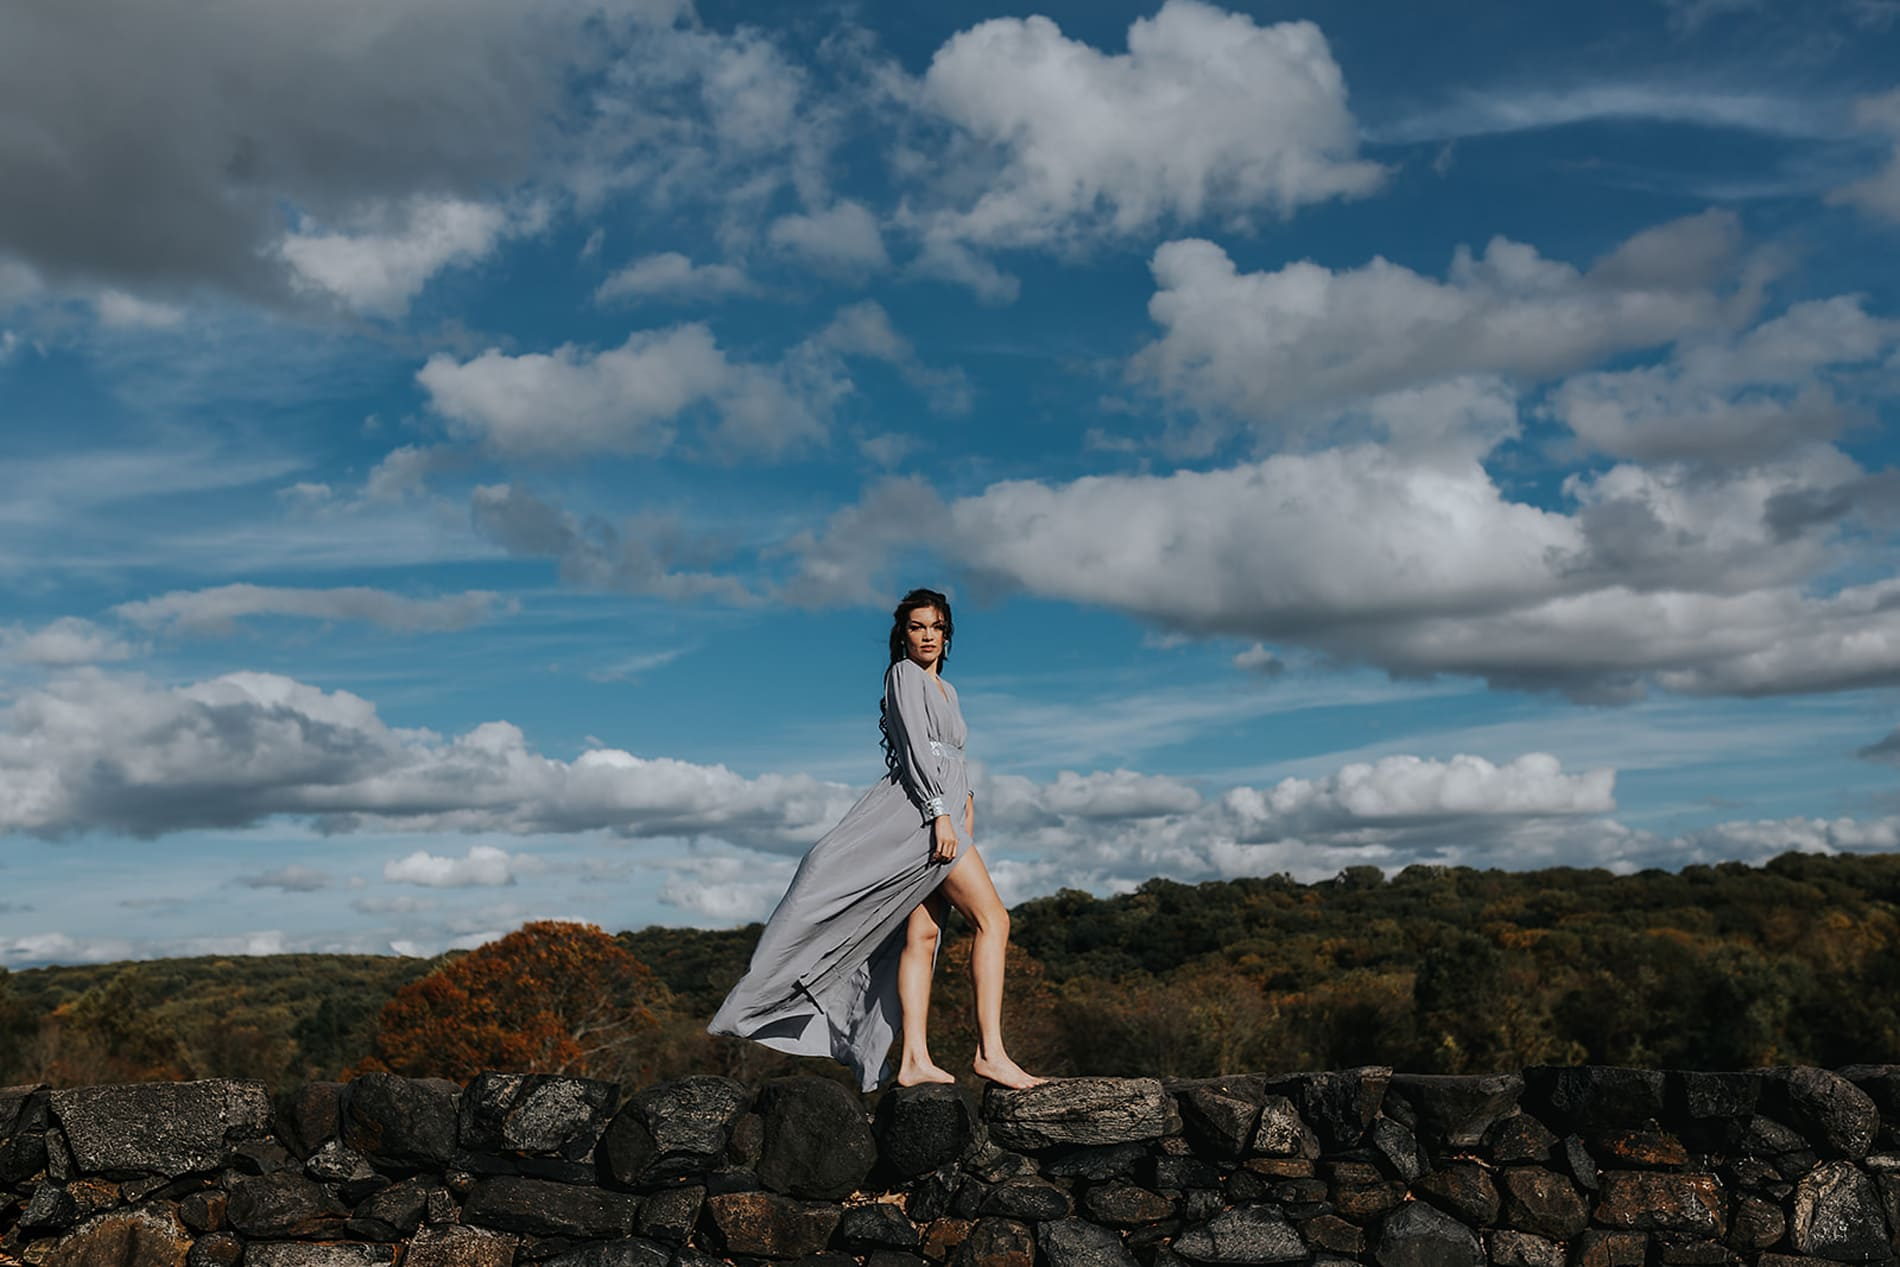 Wedding Photographer, Lady in flowing dress stands outdoors confidently on a cloudy day